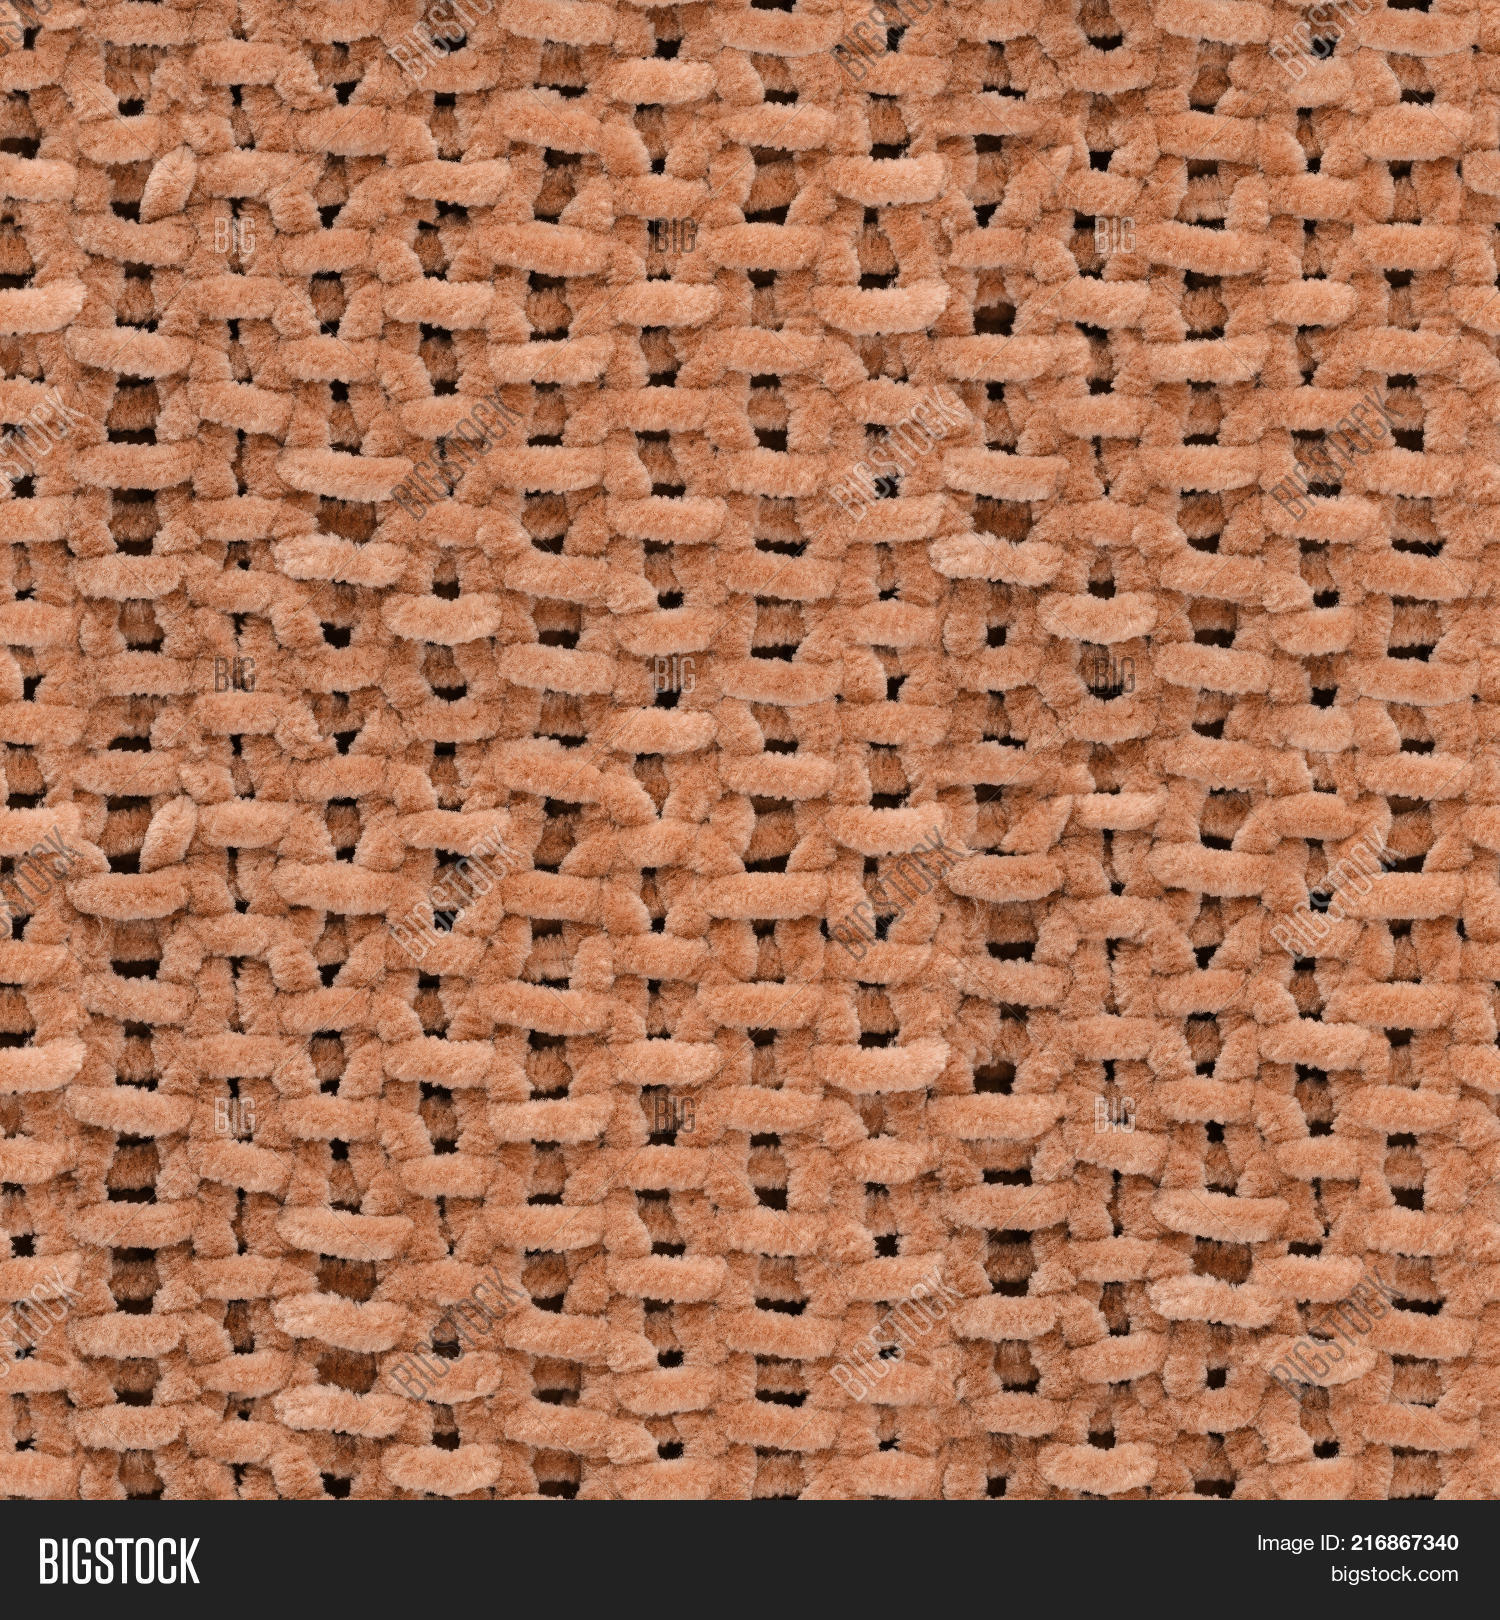 Brown Seamless Fabric Textures Seamless Texture Brown Image Photo Free Trial Bigstock